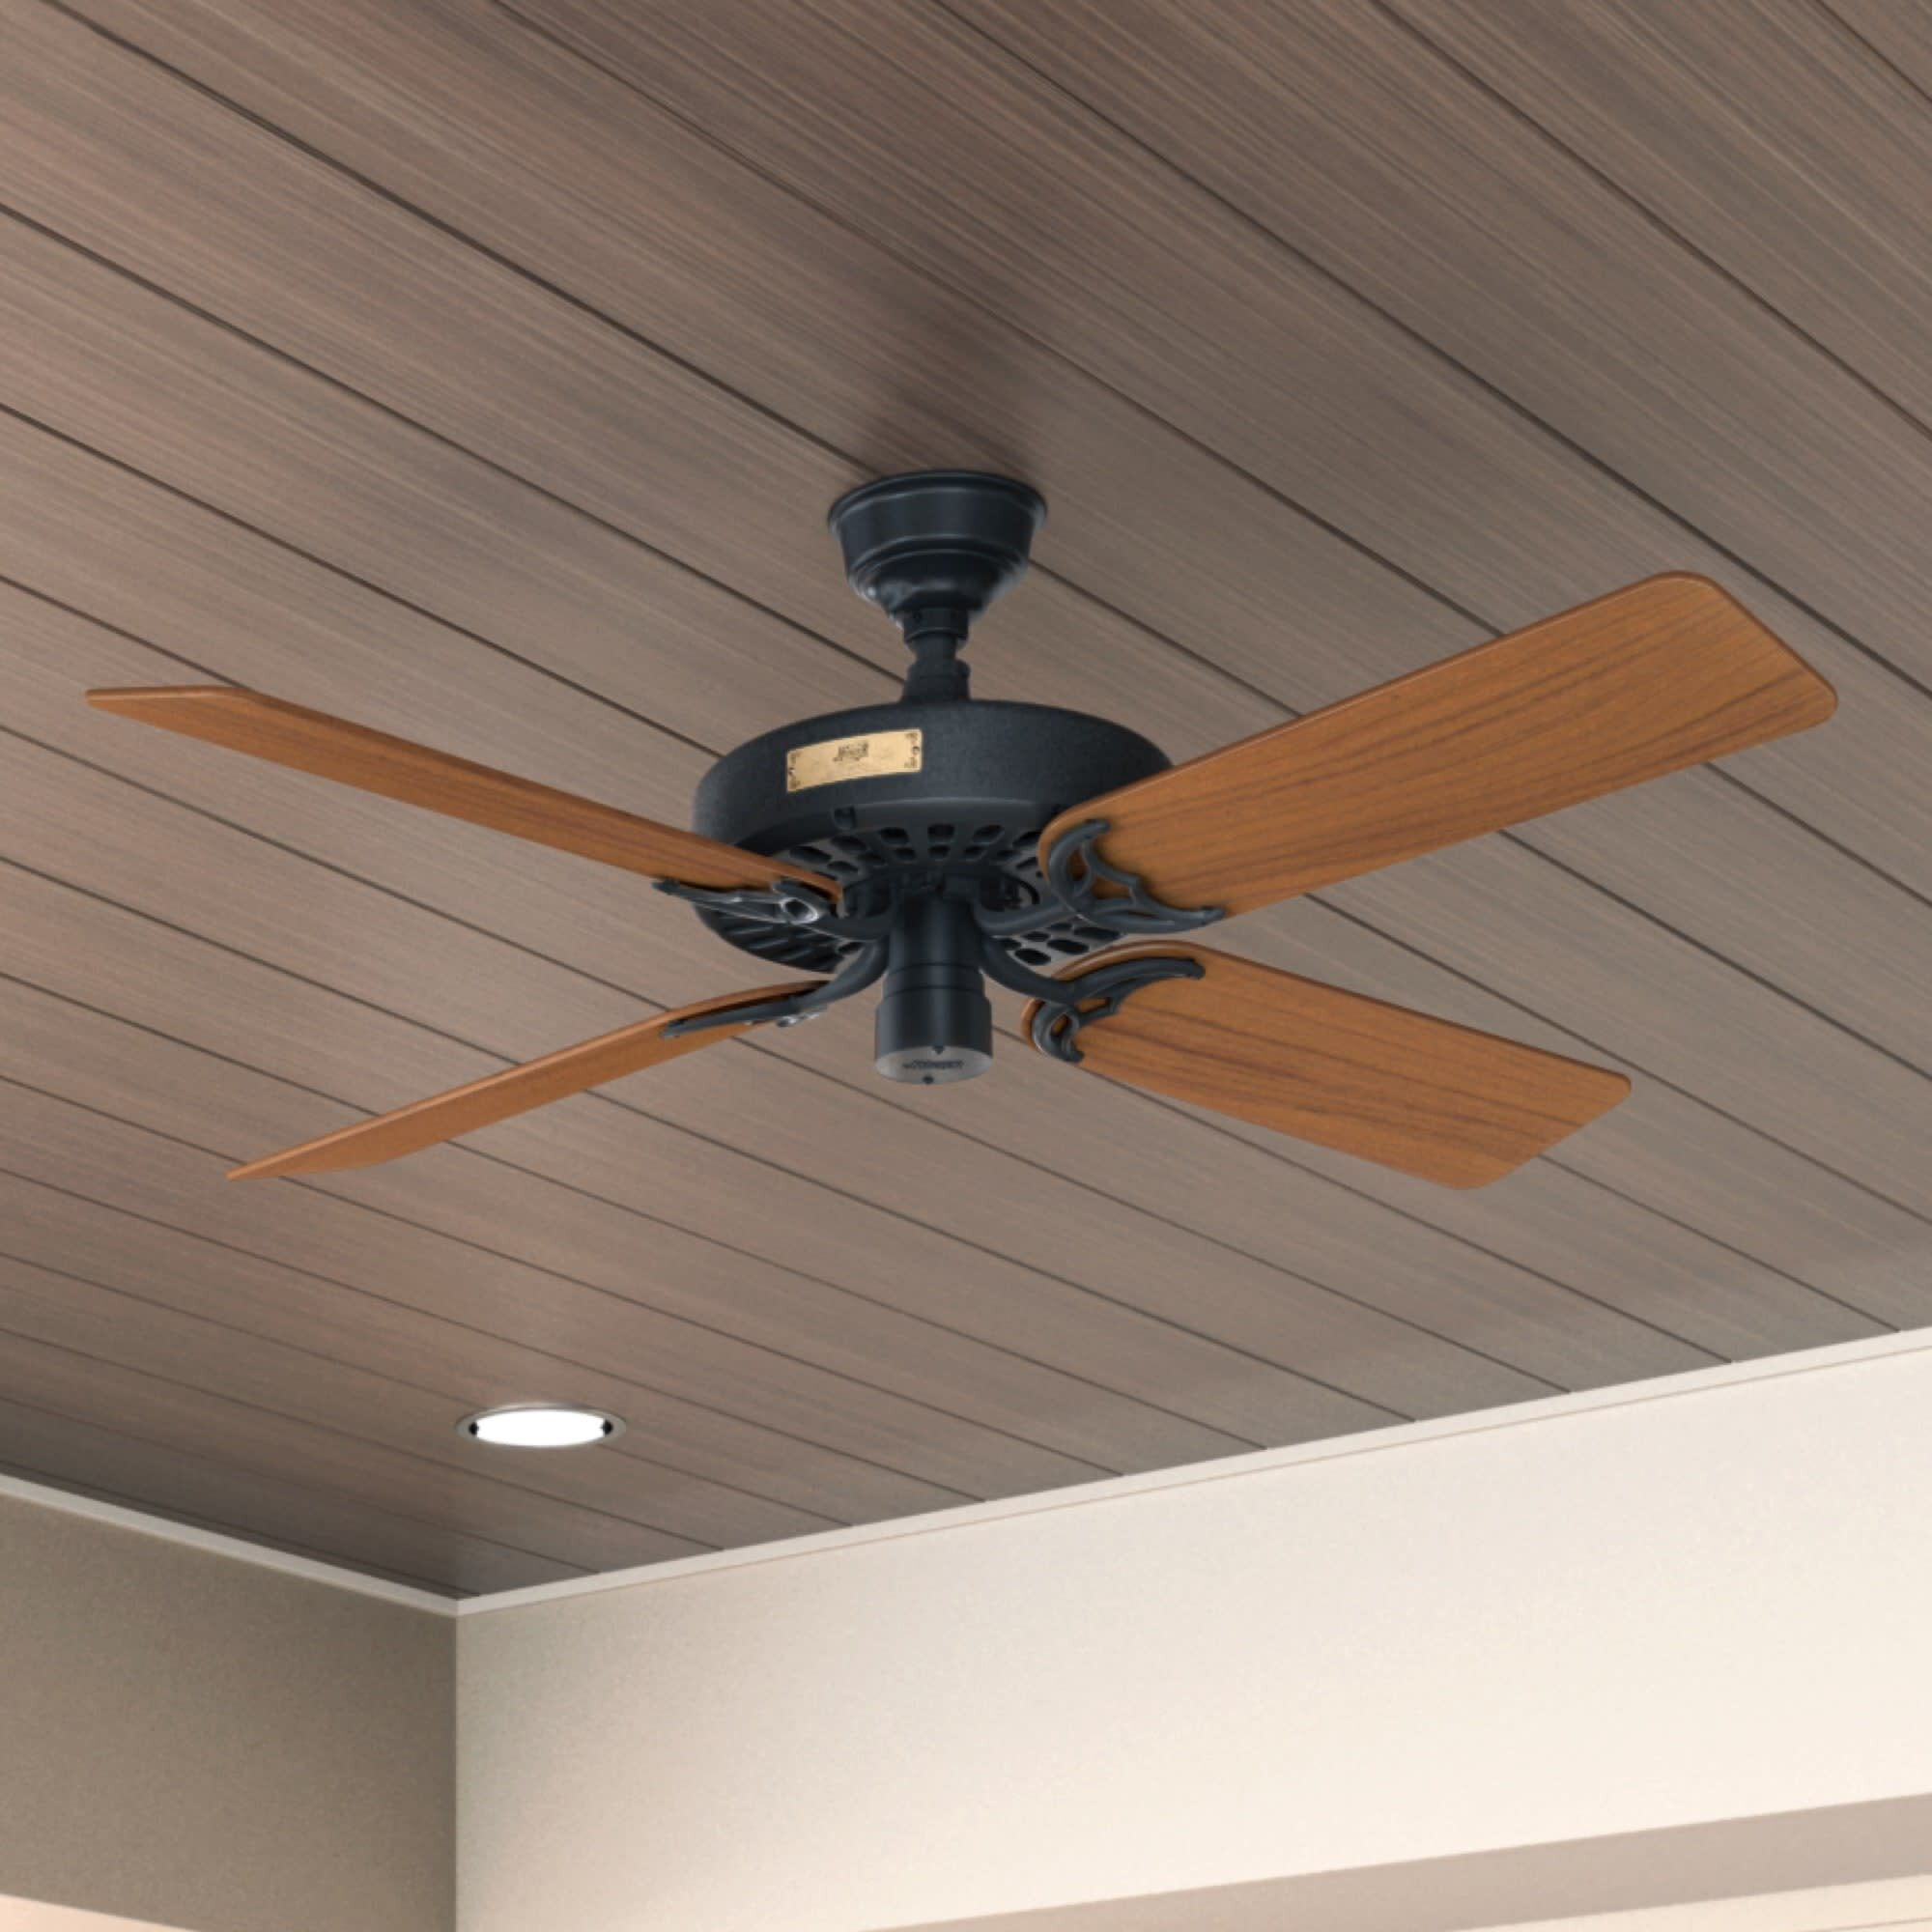 Hunter Fan 52 Original 5 Blade Standard Ceiling Fan With Pull Chain Reviews Wayfair